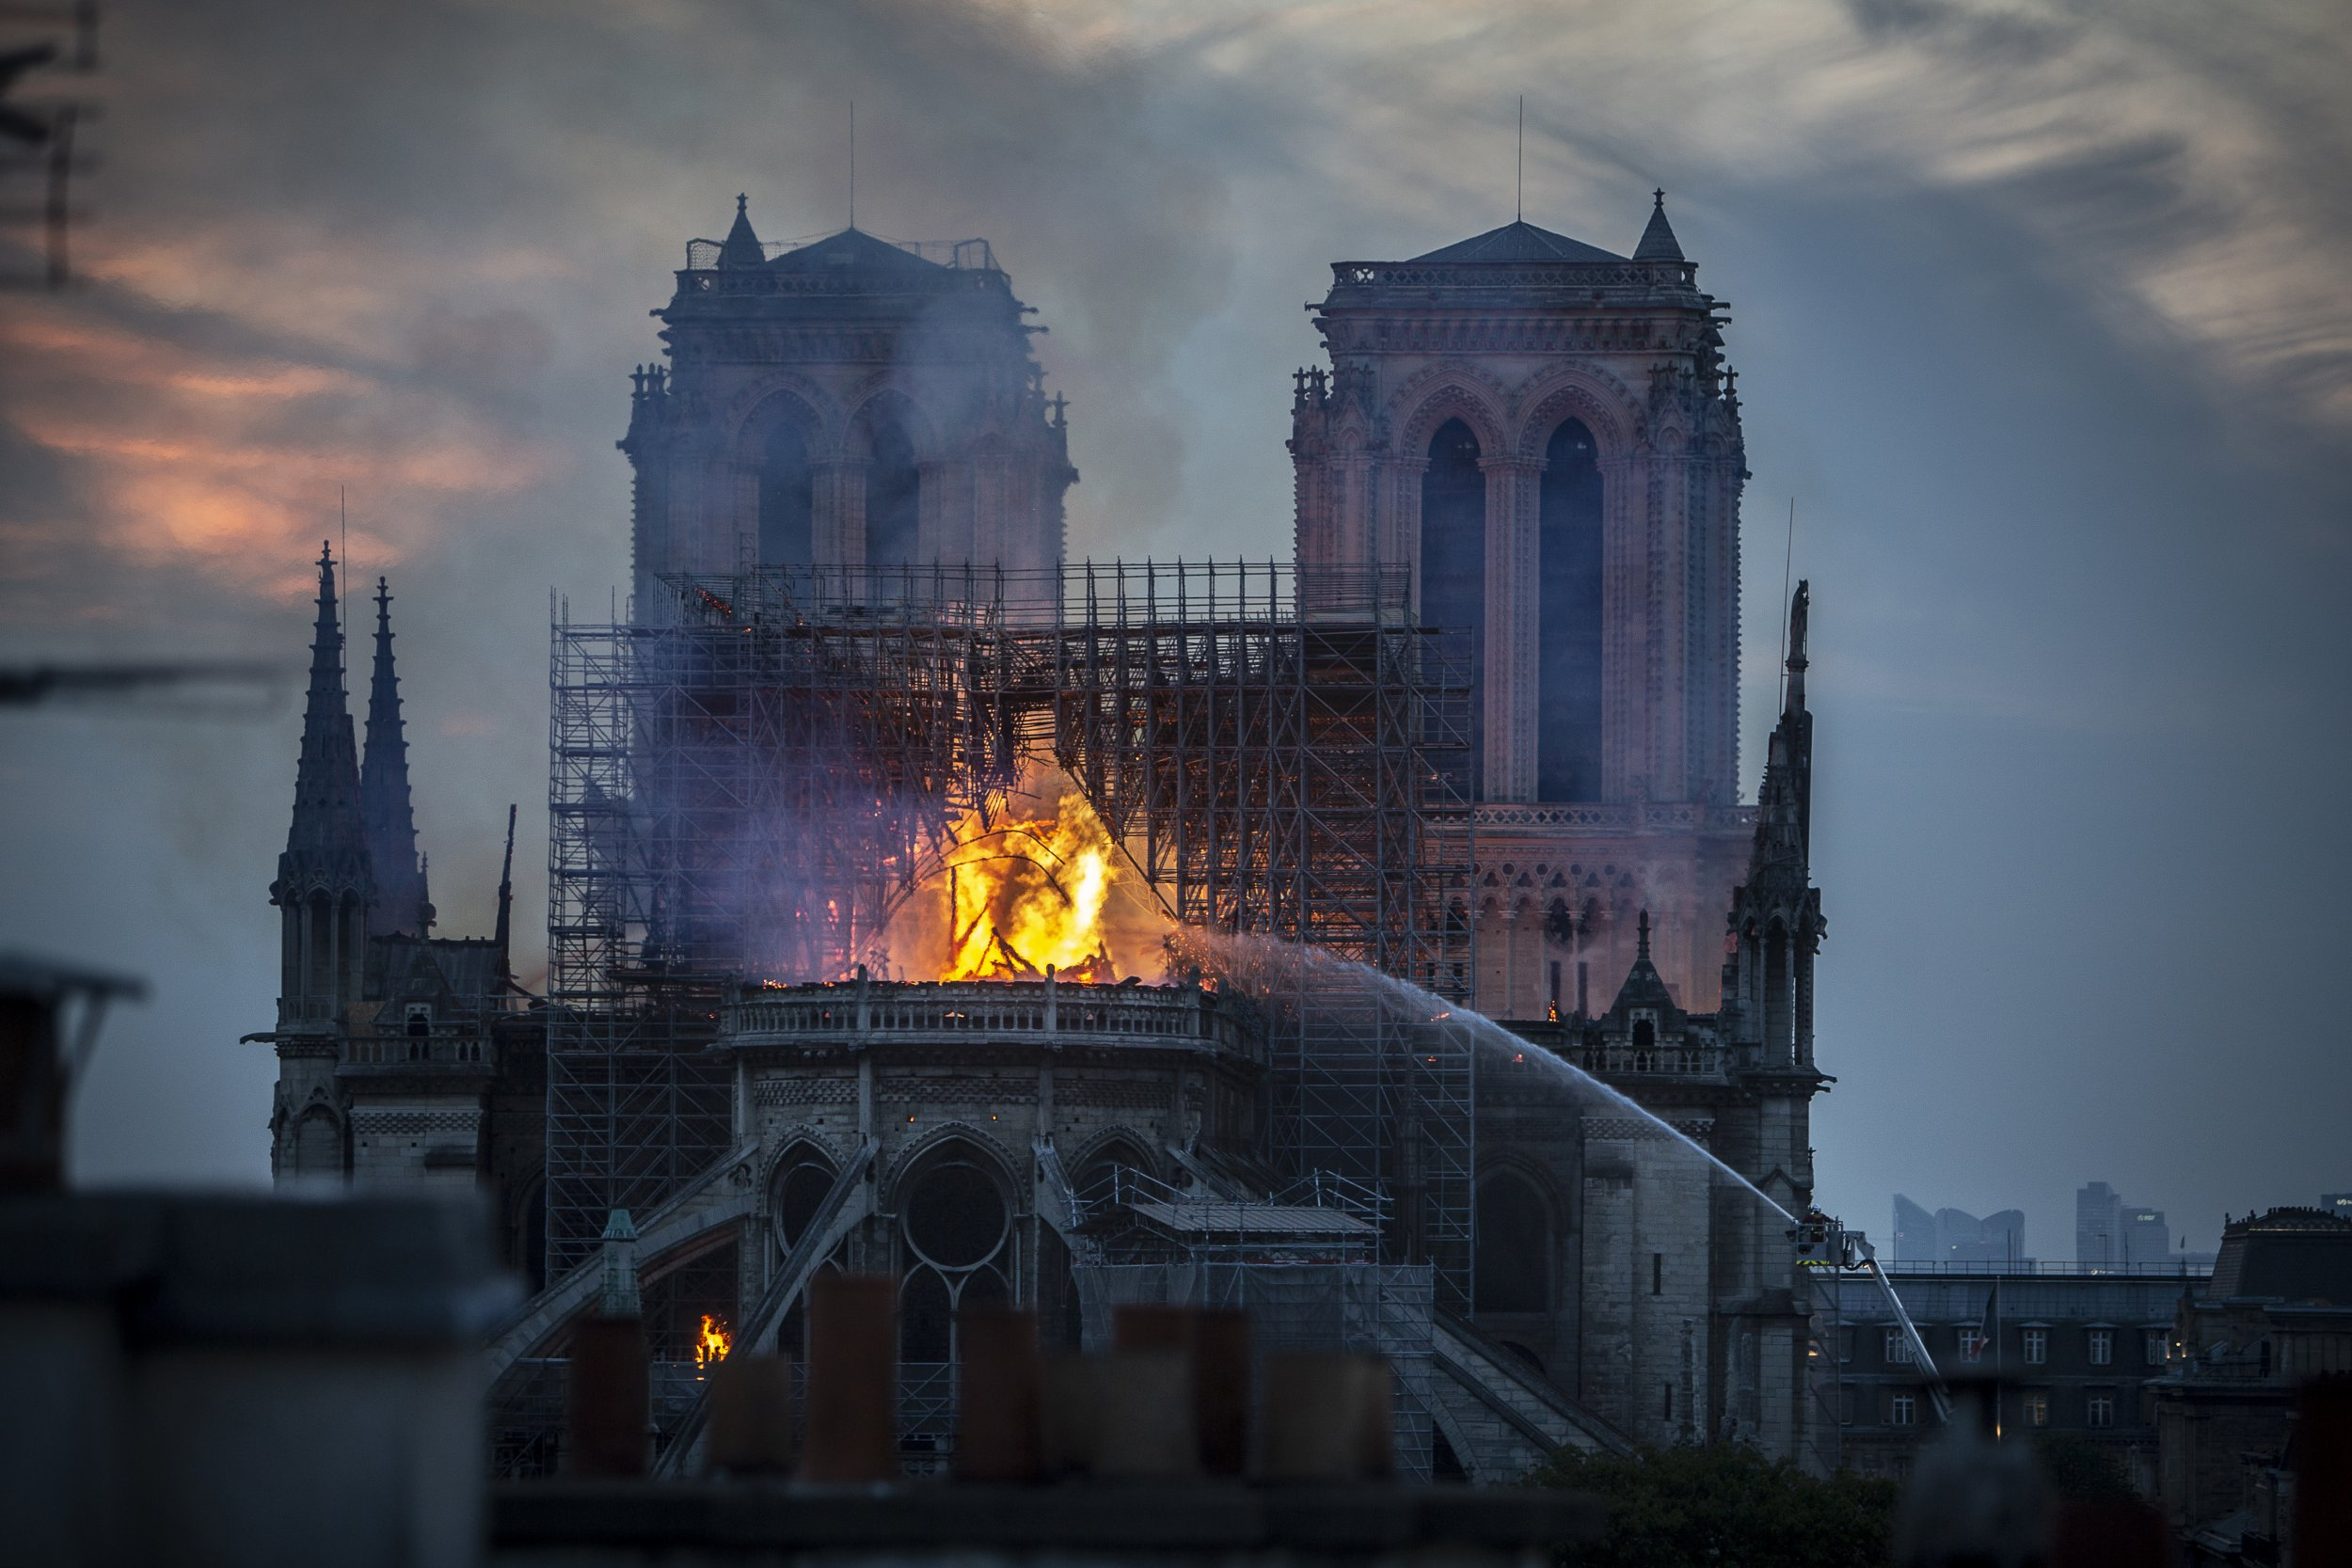 Watch the moment when Notre Dame's burning spire topples over